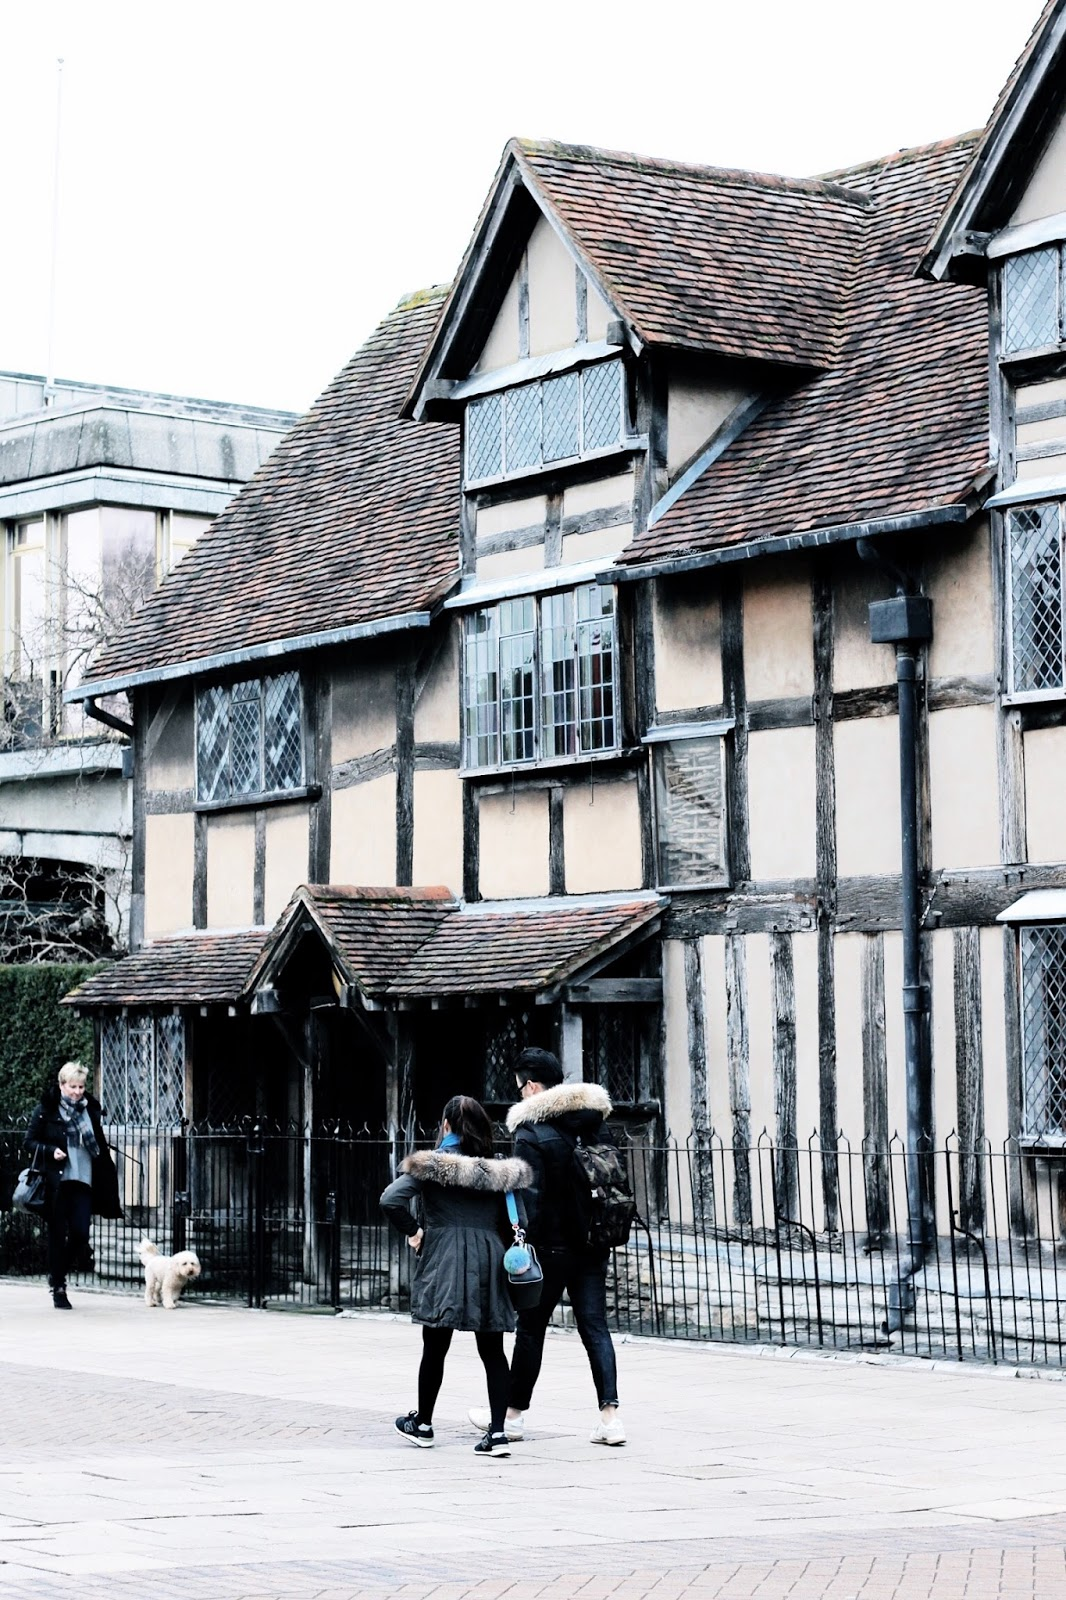 Birthplace of Shakespeare in Stratford-upon-Avon